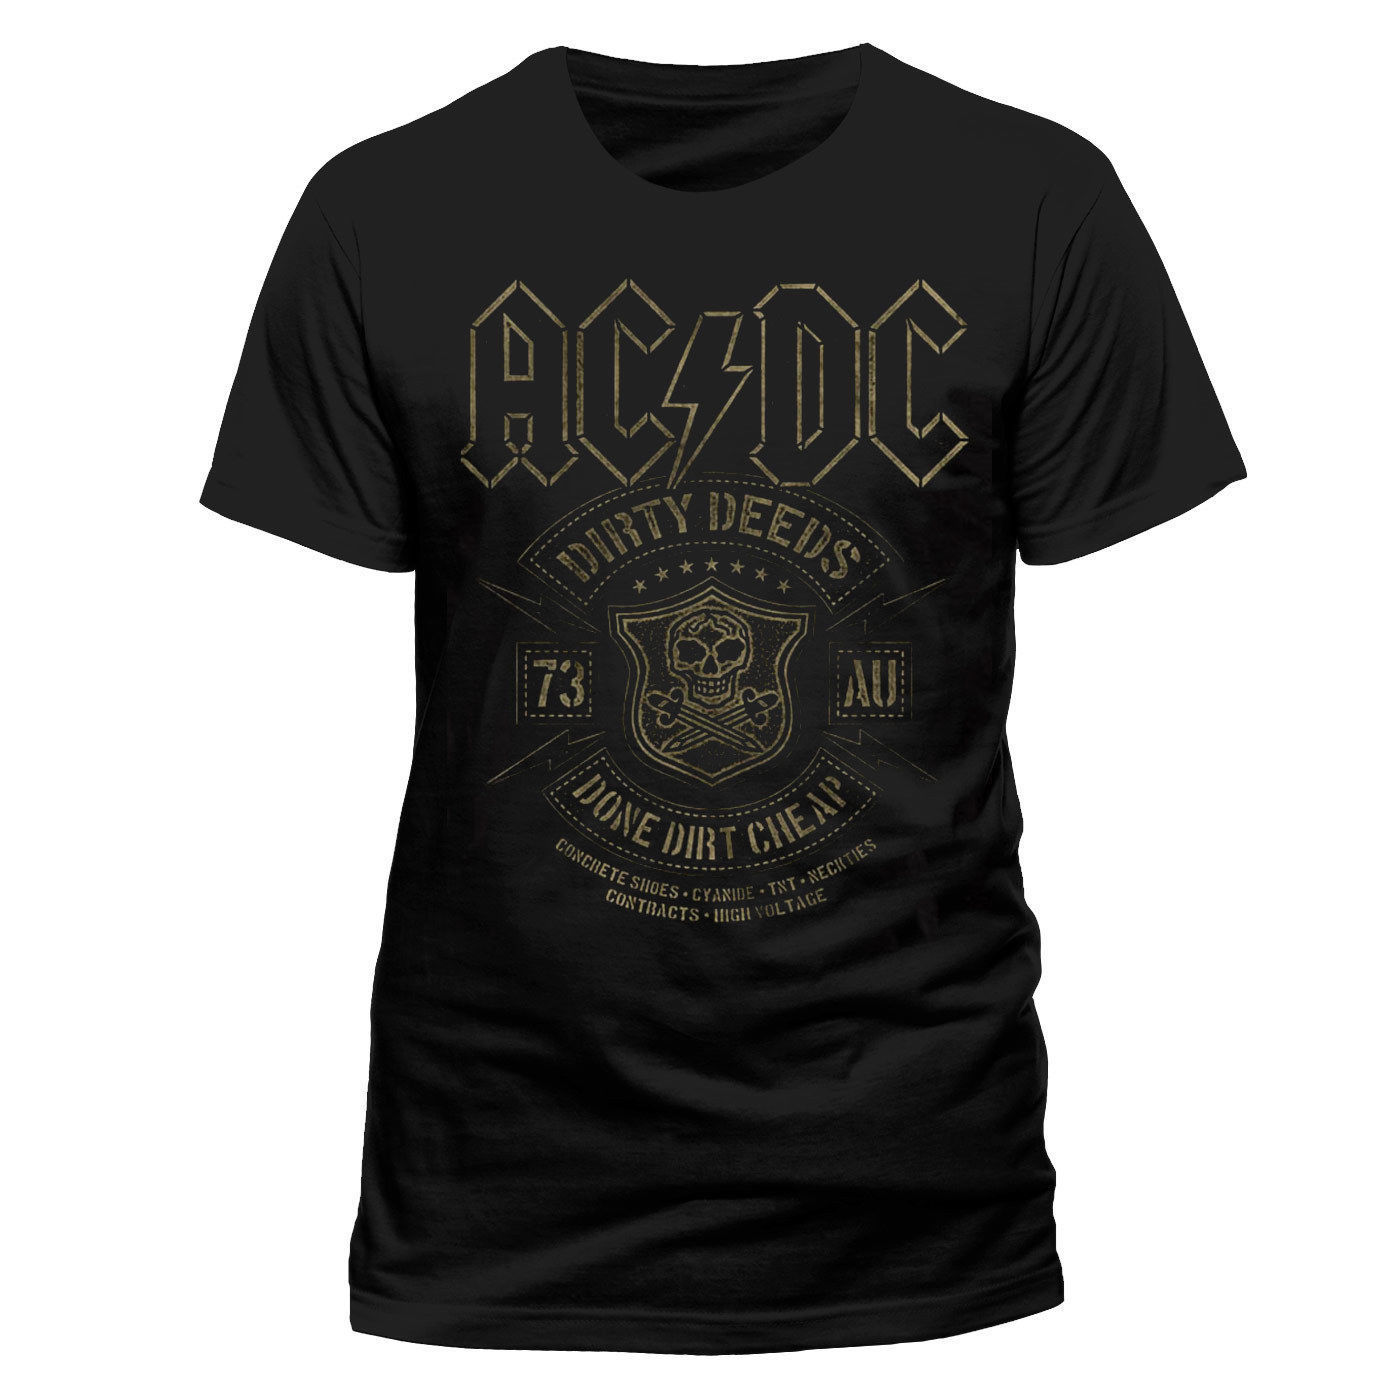 ACDC Licensed Dirty Deeds Done Cheap Rock Heavy Metal Tee T-Shirt Men Cartoon Print Short Sleeve T Shirt Free Shipping